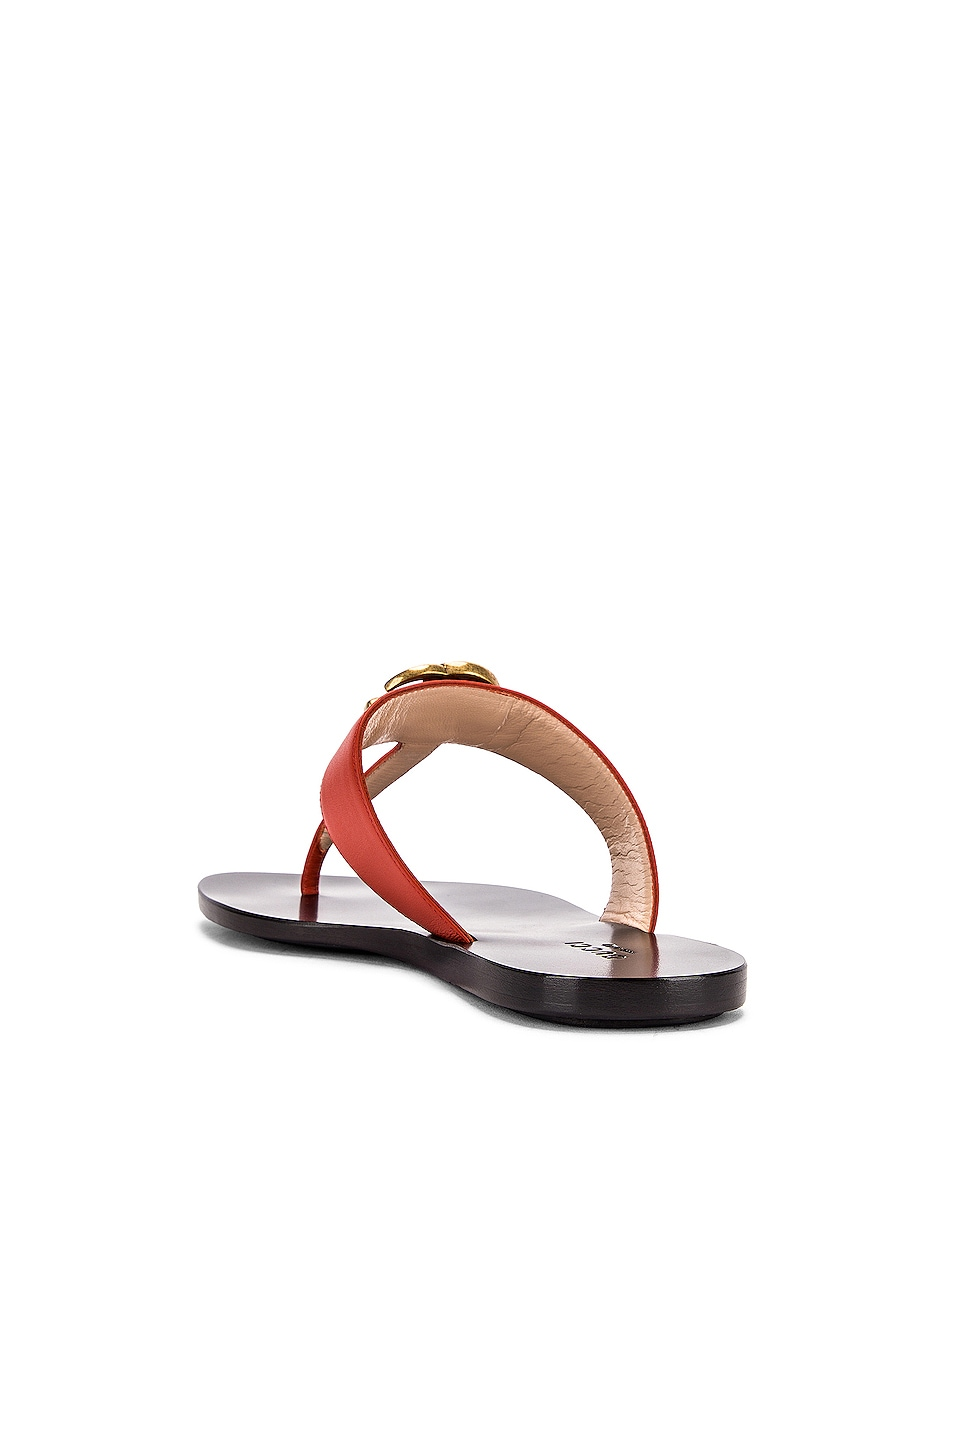 Image 4 of Gucci Double G Leather Thong Sandals in Bright Pumpkin